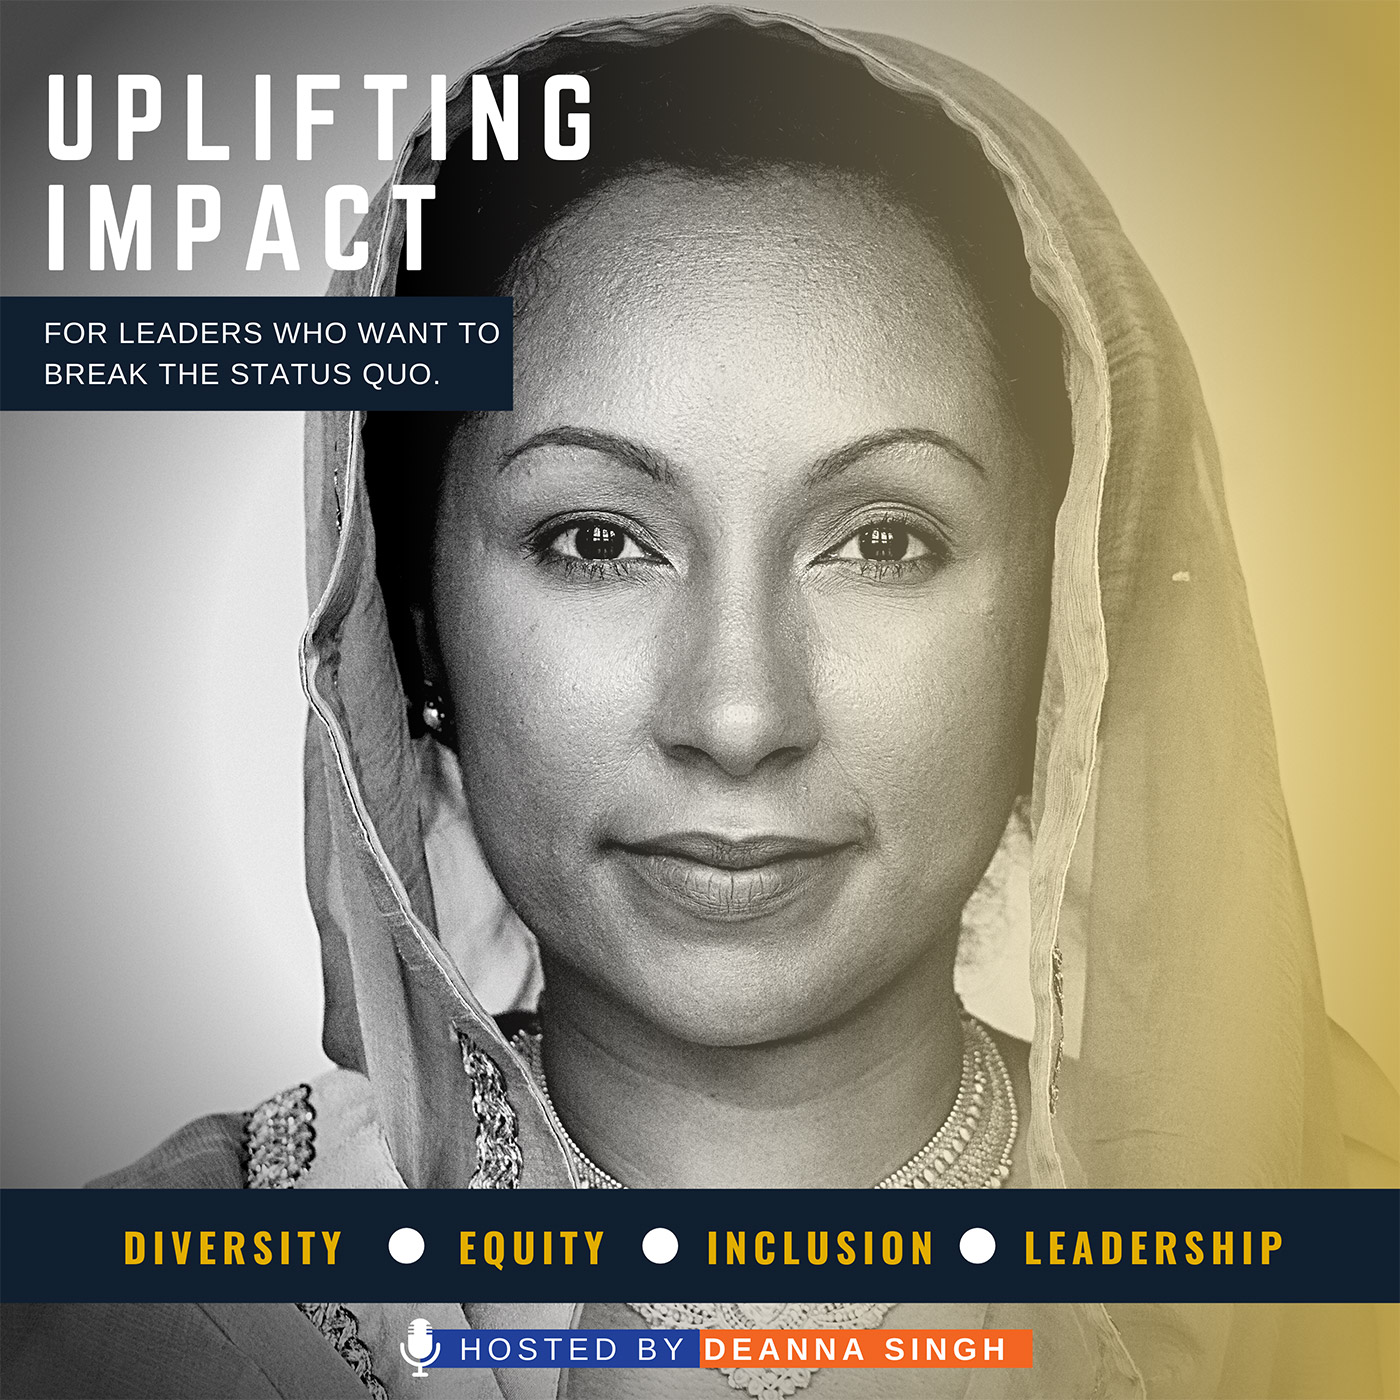 We look at the intersection of Leadership and Diversity, Equity, and Inclusion. There are a lot of people who will discuss the challenges in the DEI space, but not how to solve them. Leaders who want to break the status quo, come here. We will build a more diverse, equitable, and inclusive world together.